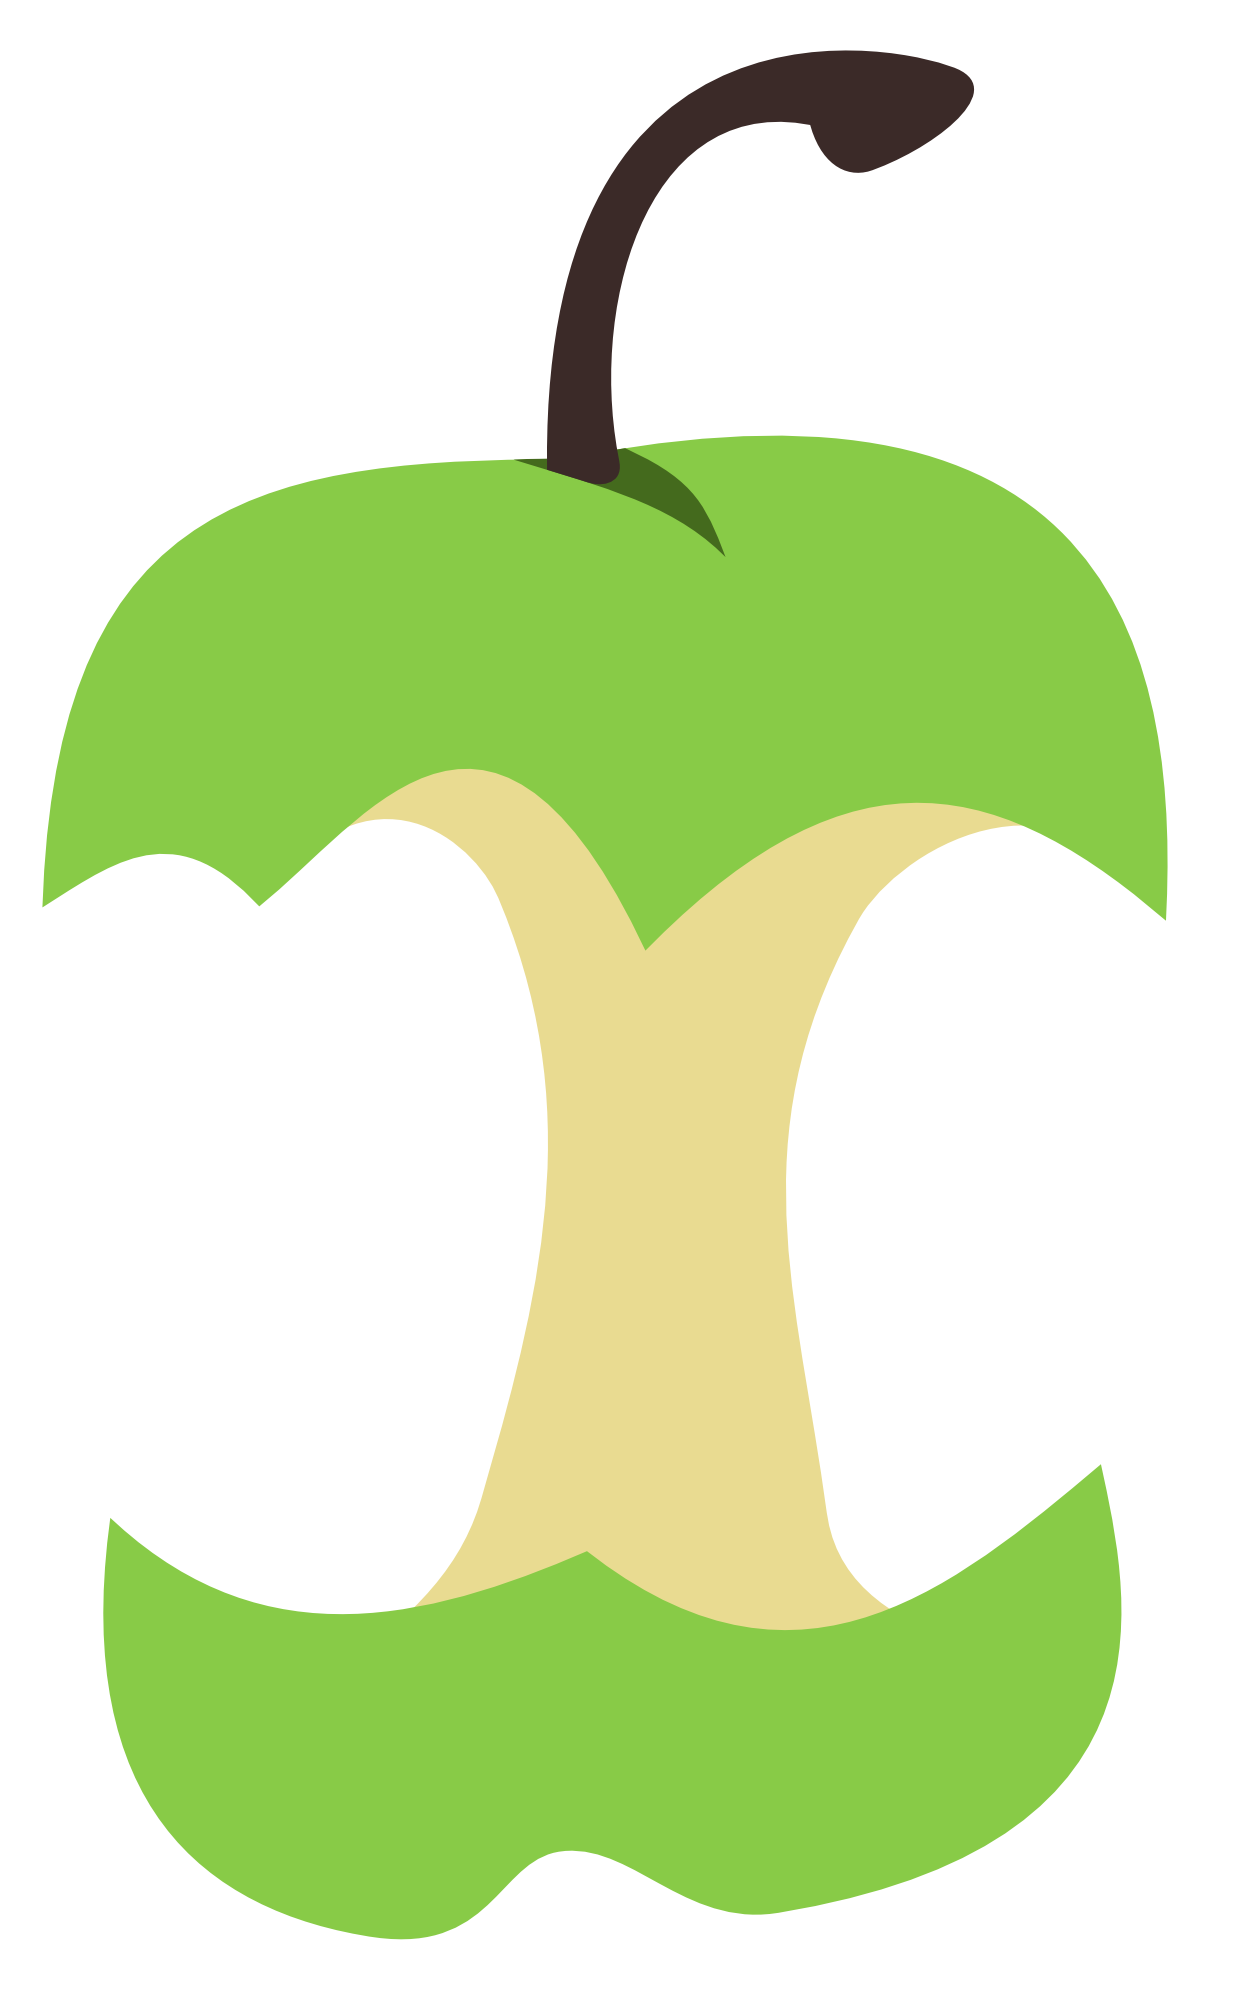 Core Apple Free Cliparts That You Can Download To You Computer And